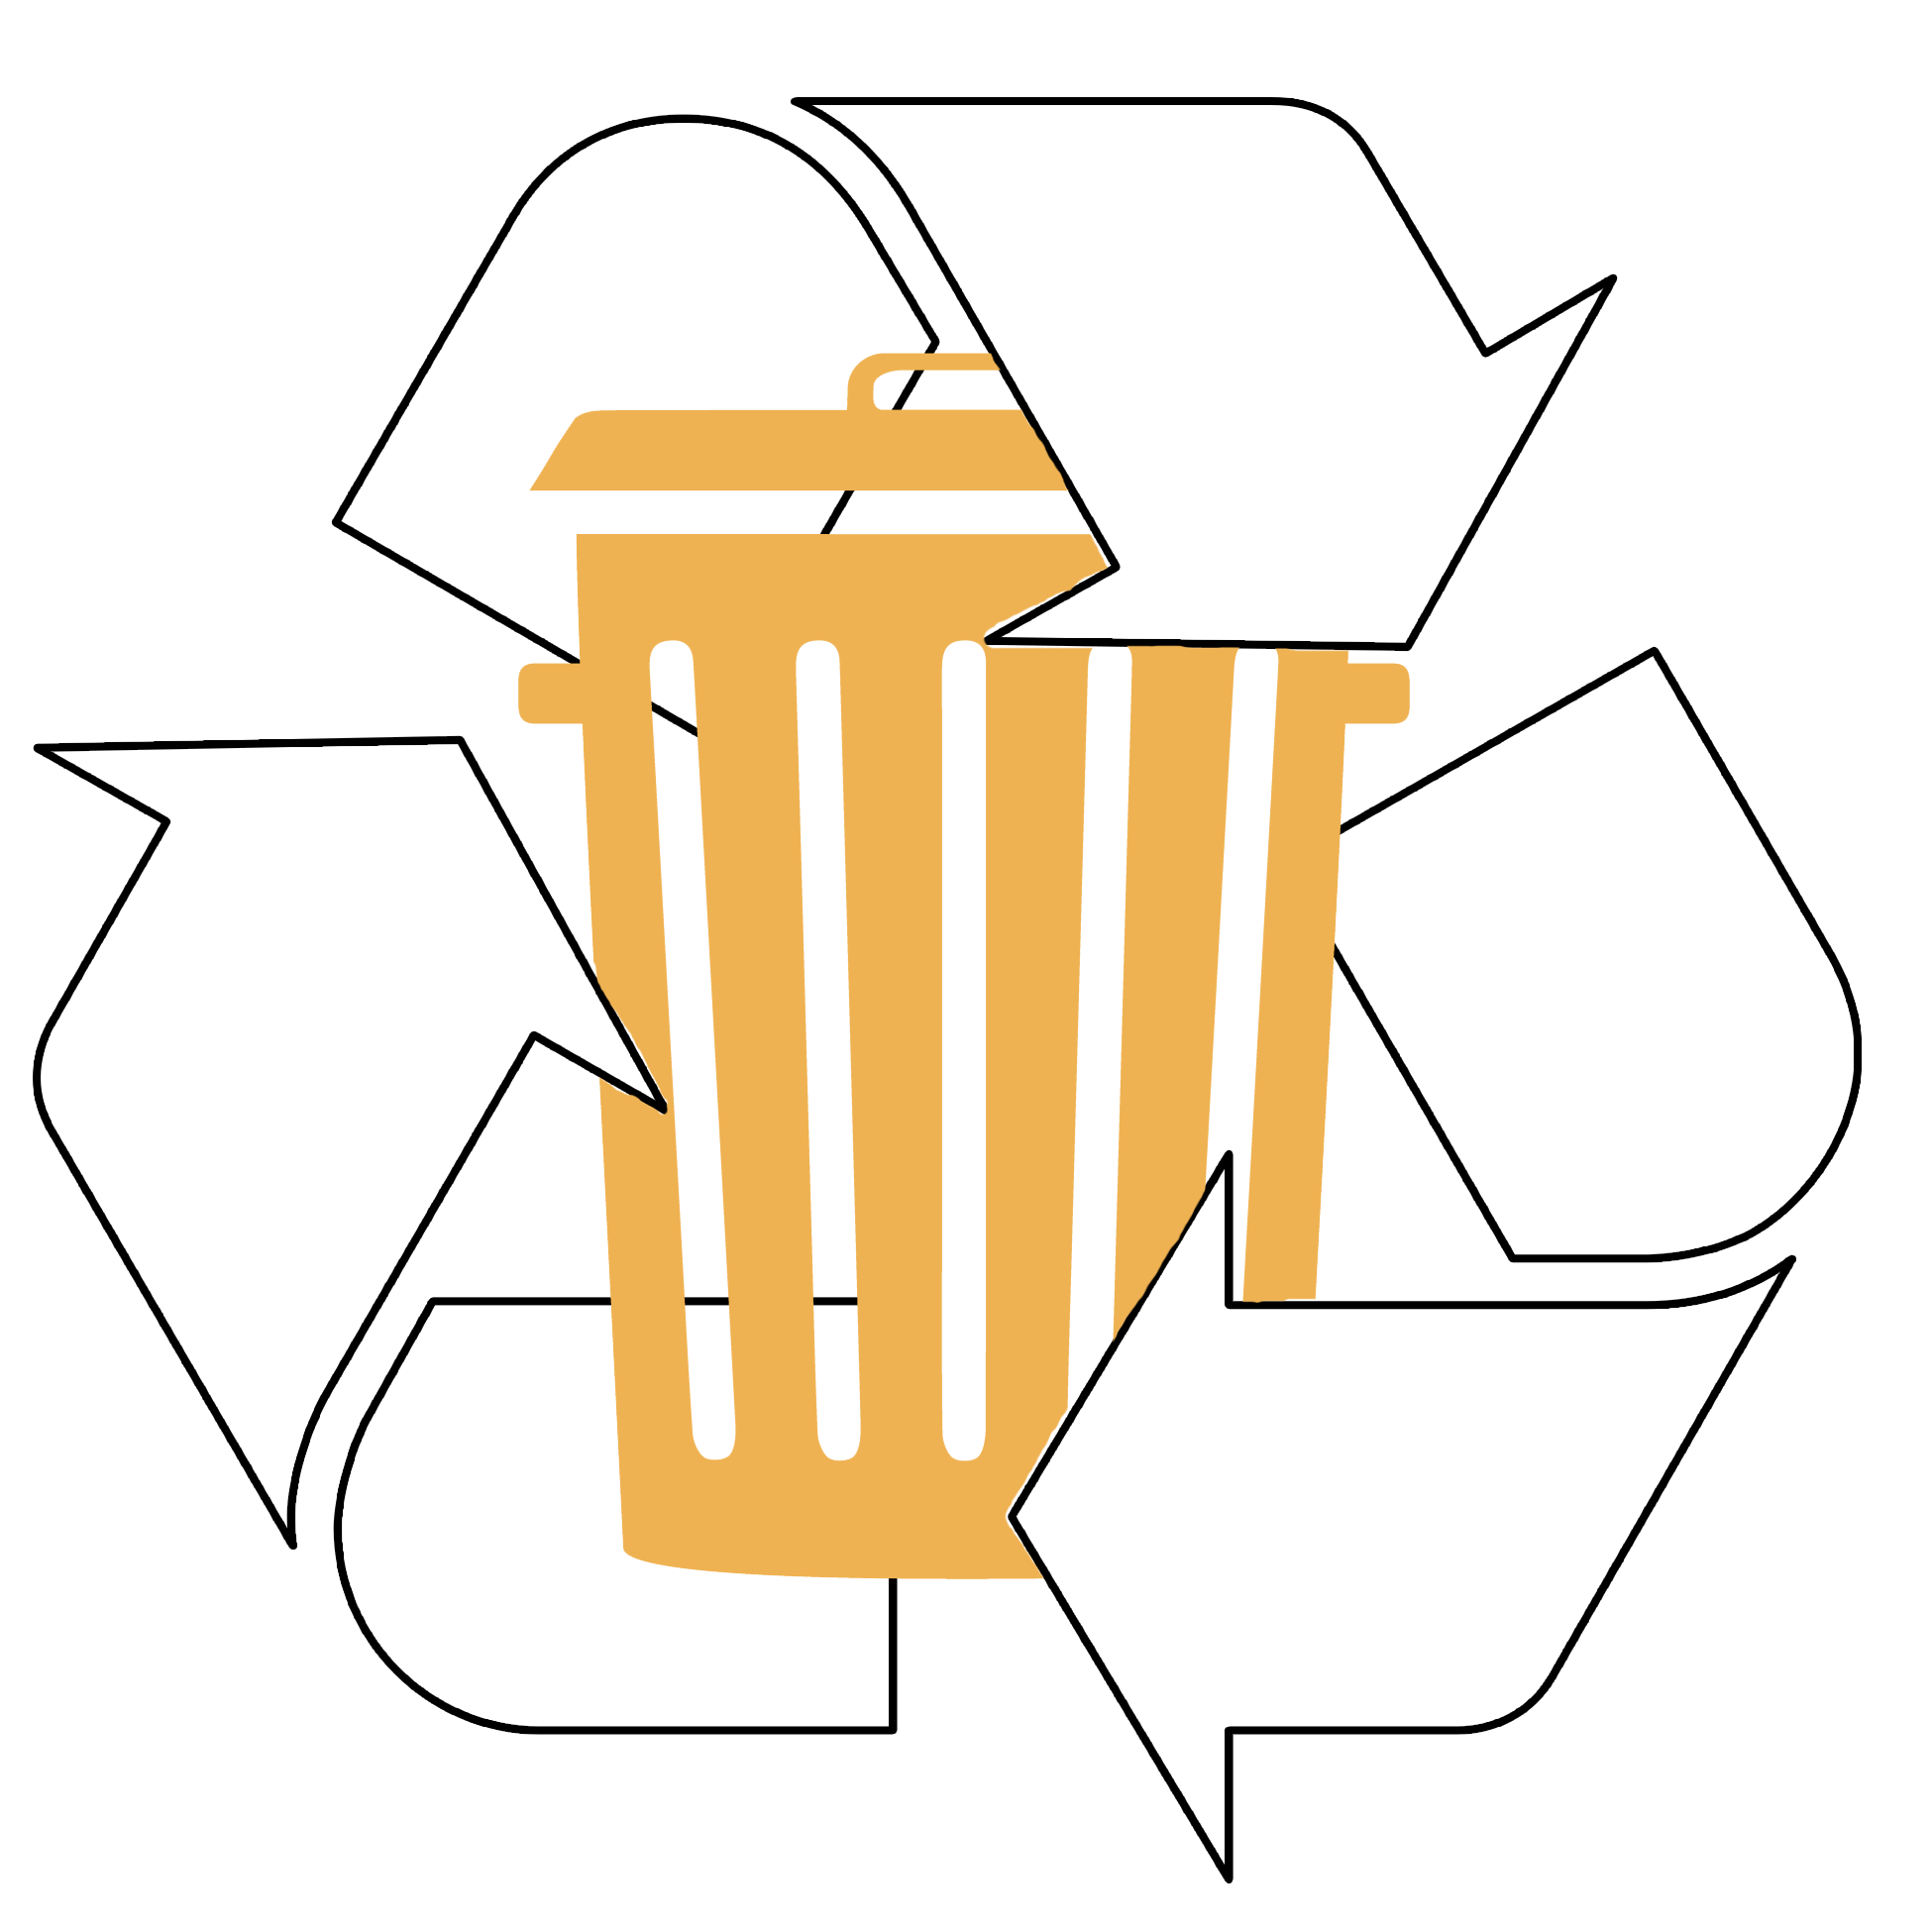 trash and recycling symbol.png